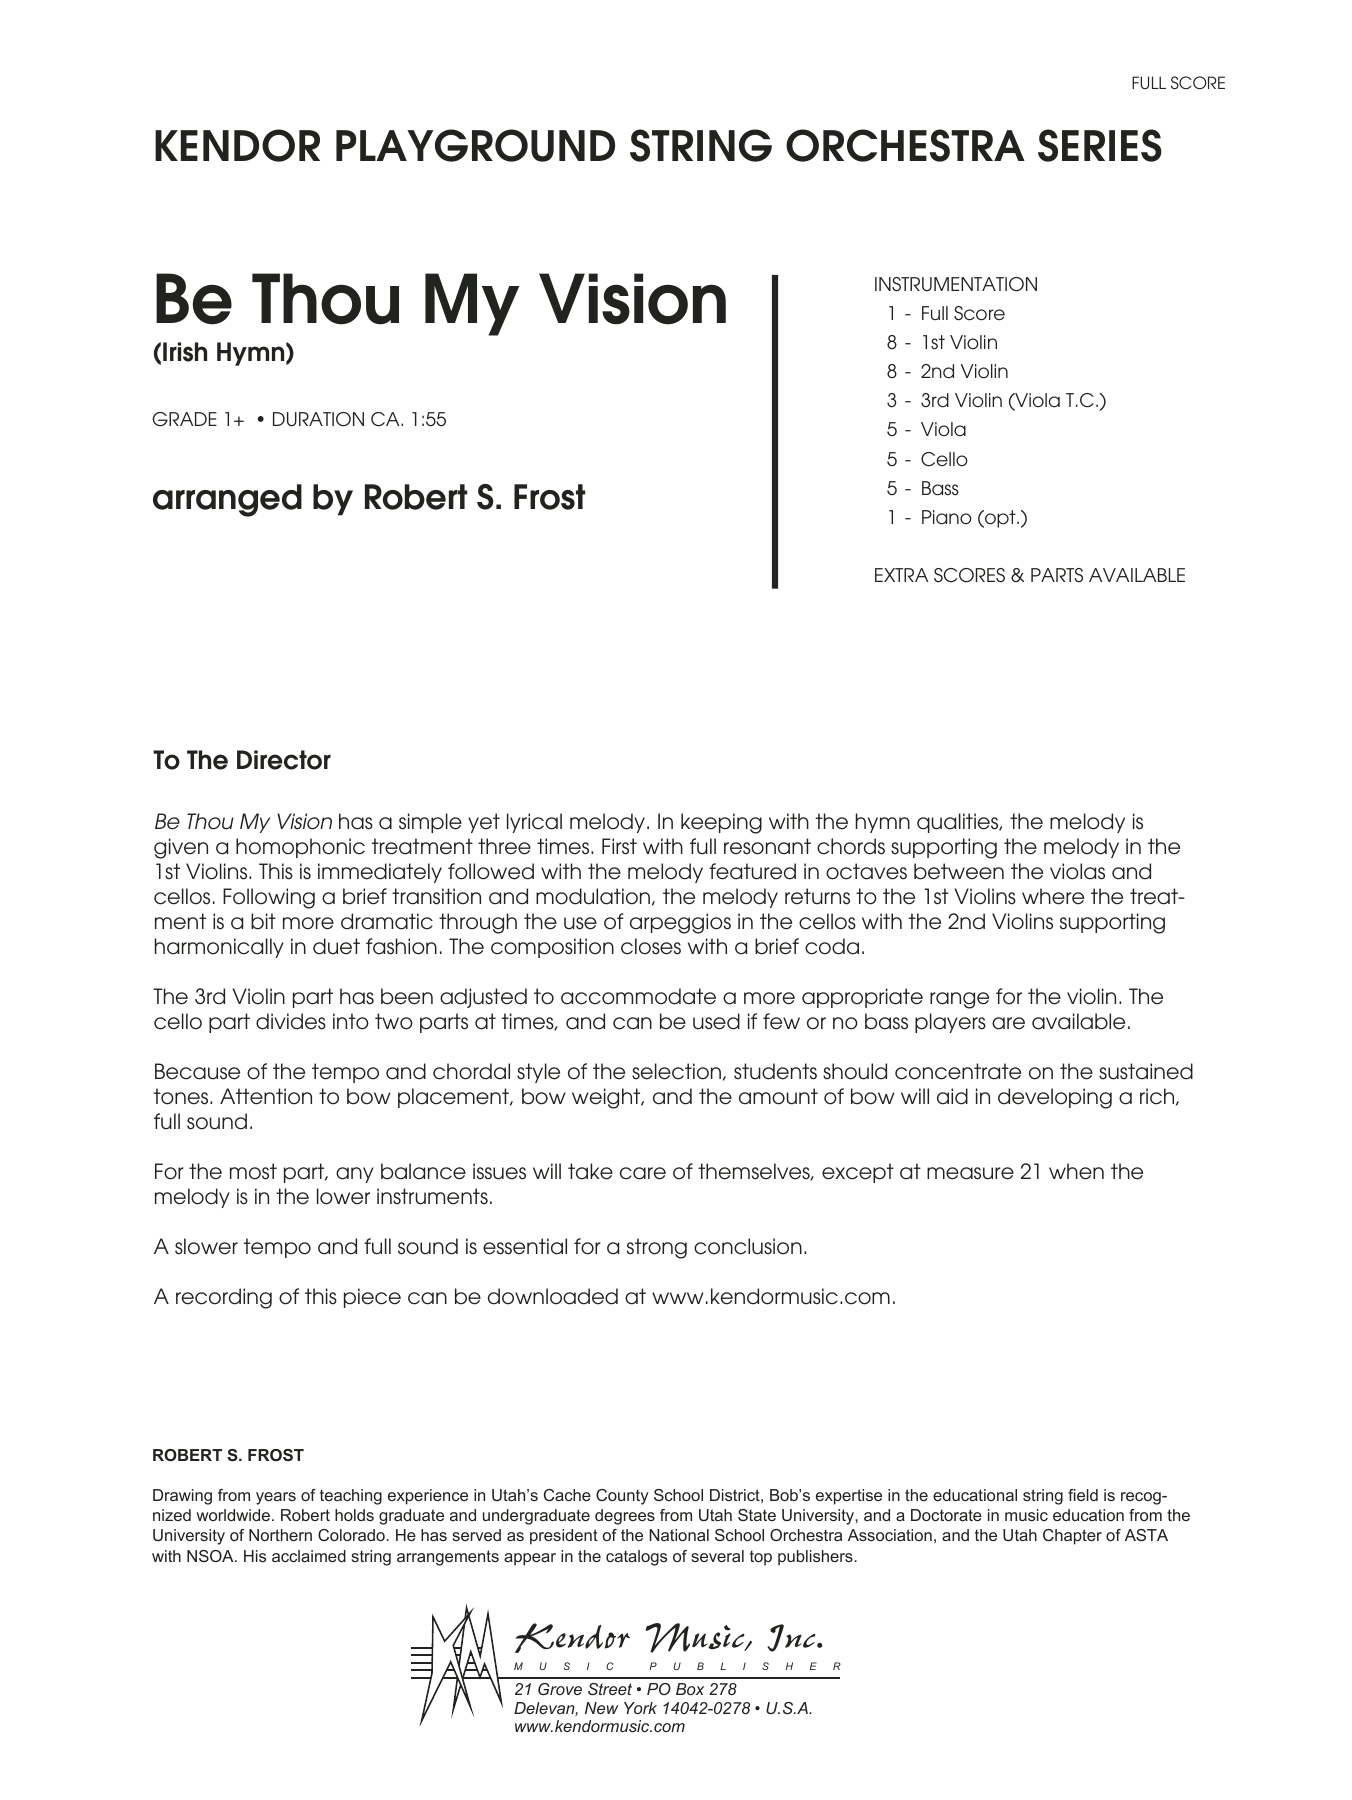 Be Thou My Vision (Irish Hymn) (COMPLETE) sheet music for orchestra  and Robert S. Frost. Score Image Preview.